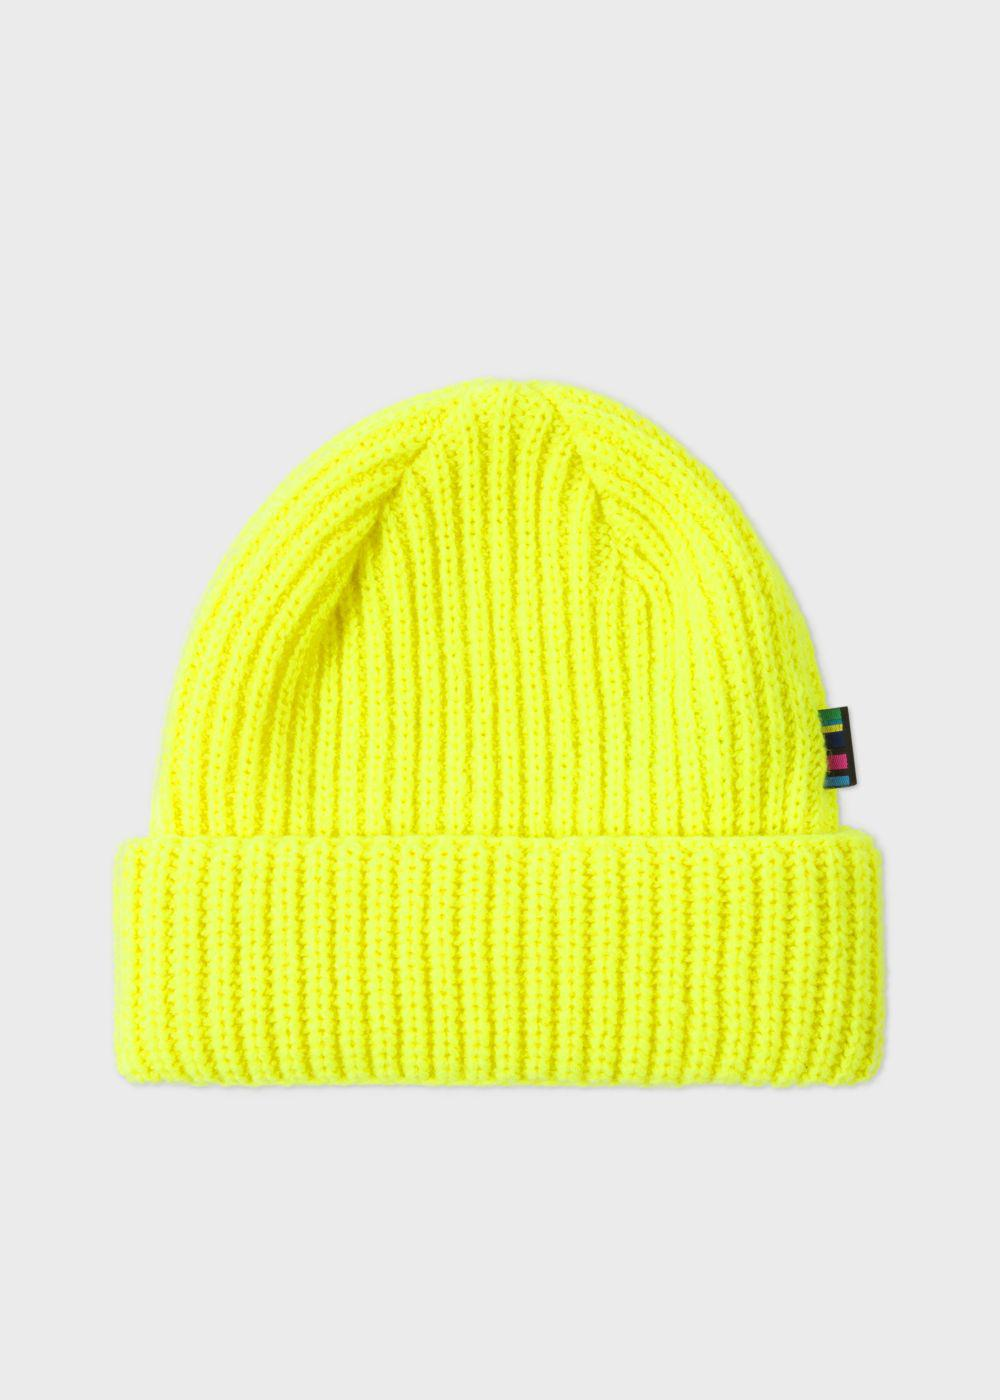 5a781a9c86a Lyst - Paul Smith Men s Neon Yellow Wool Beanie Hat in Yellow for Men